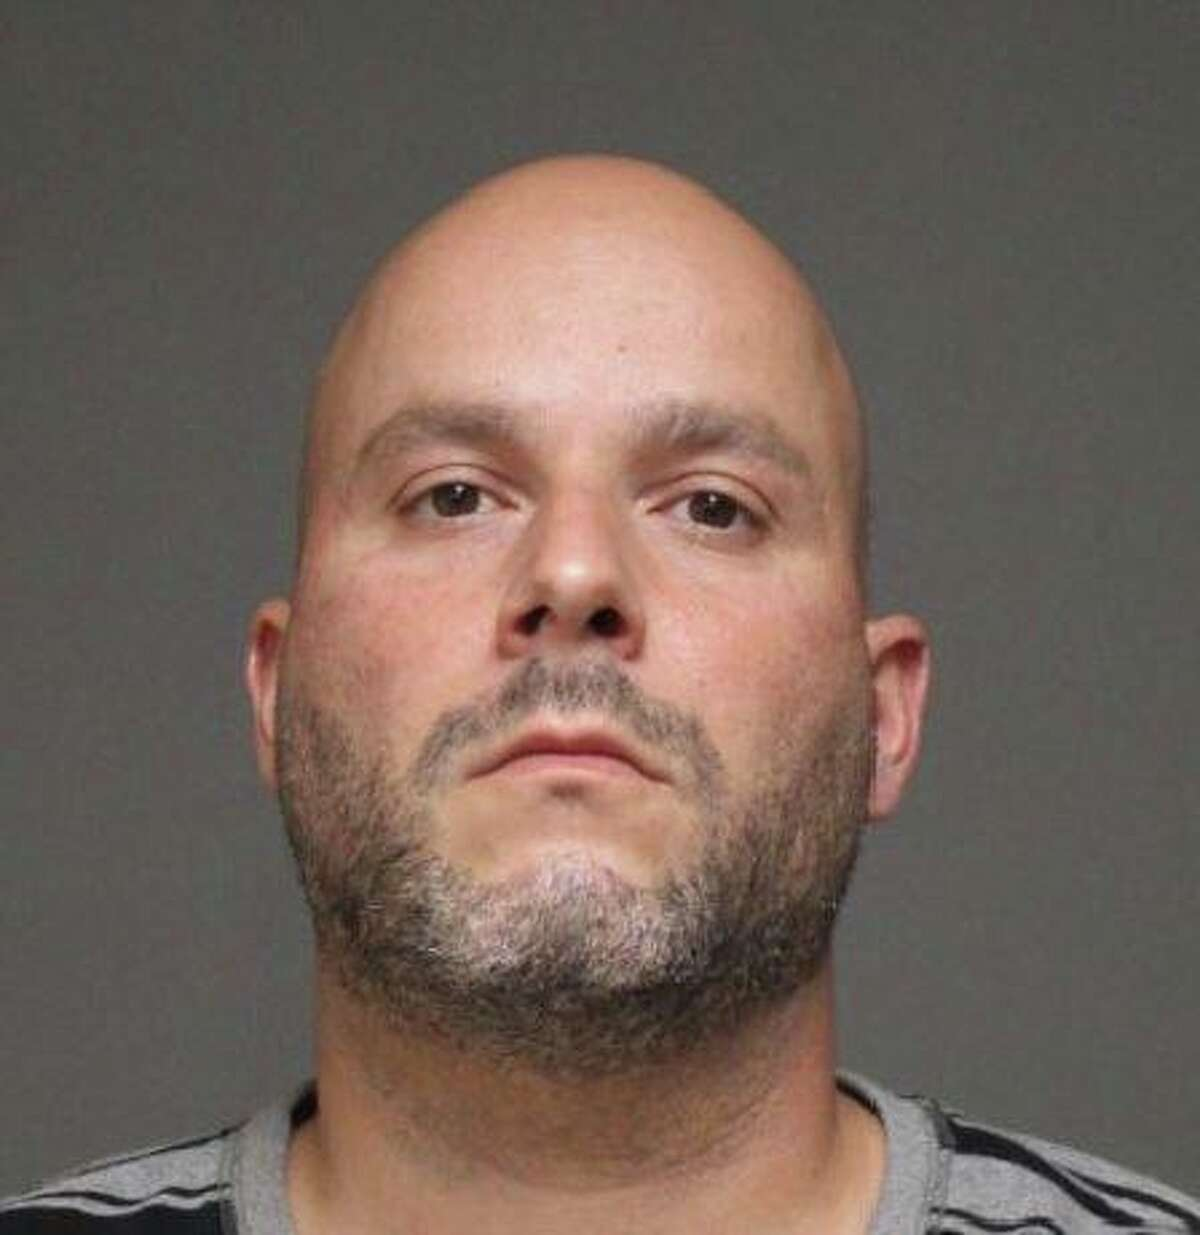 Steven Botelho, a 38-year-old Bridgeport resident, has been arrested for allegedly causing a large fire near the Metro North train tracks with illegal fireworks, according to police.